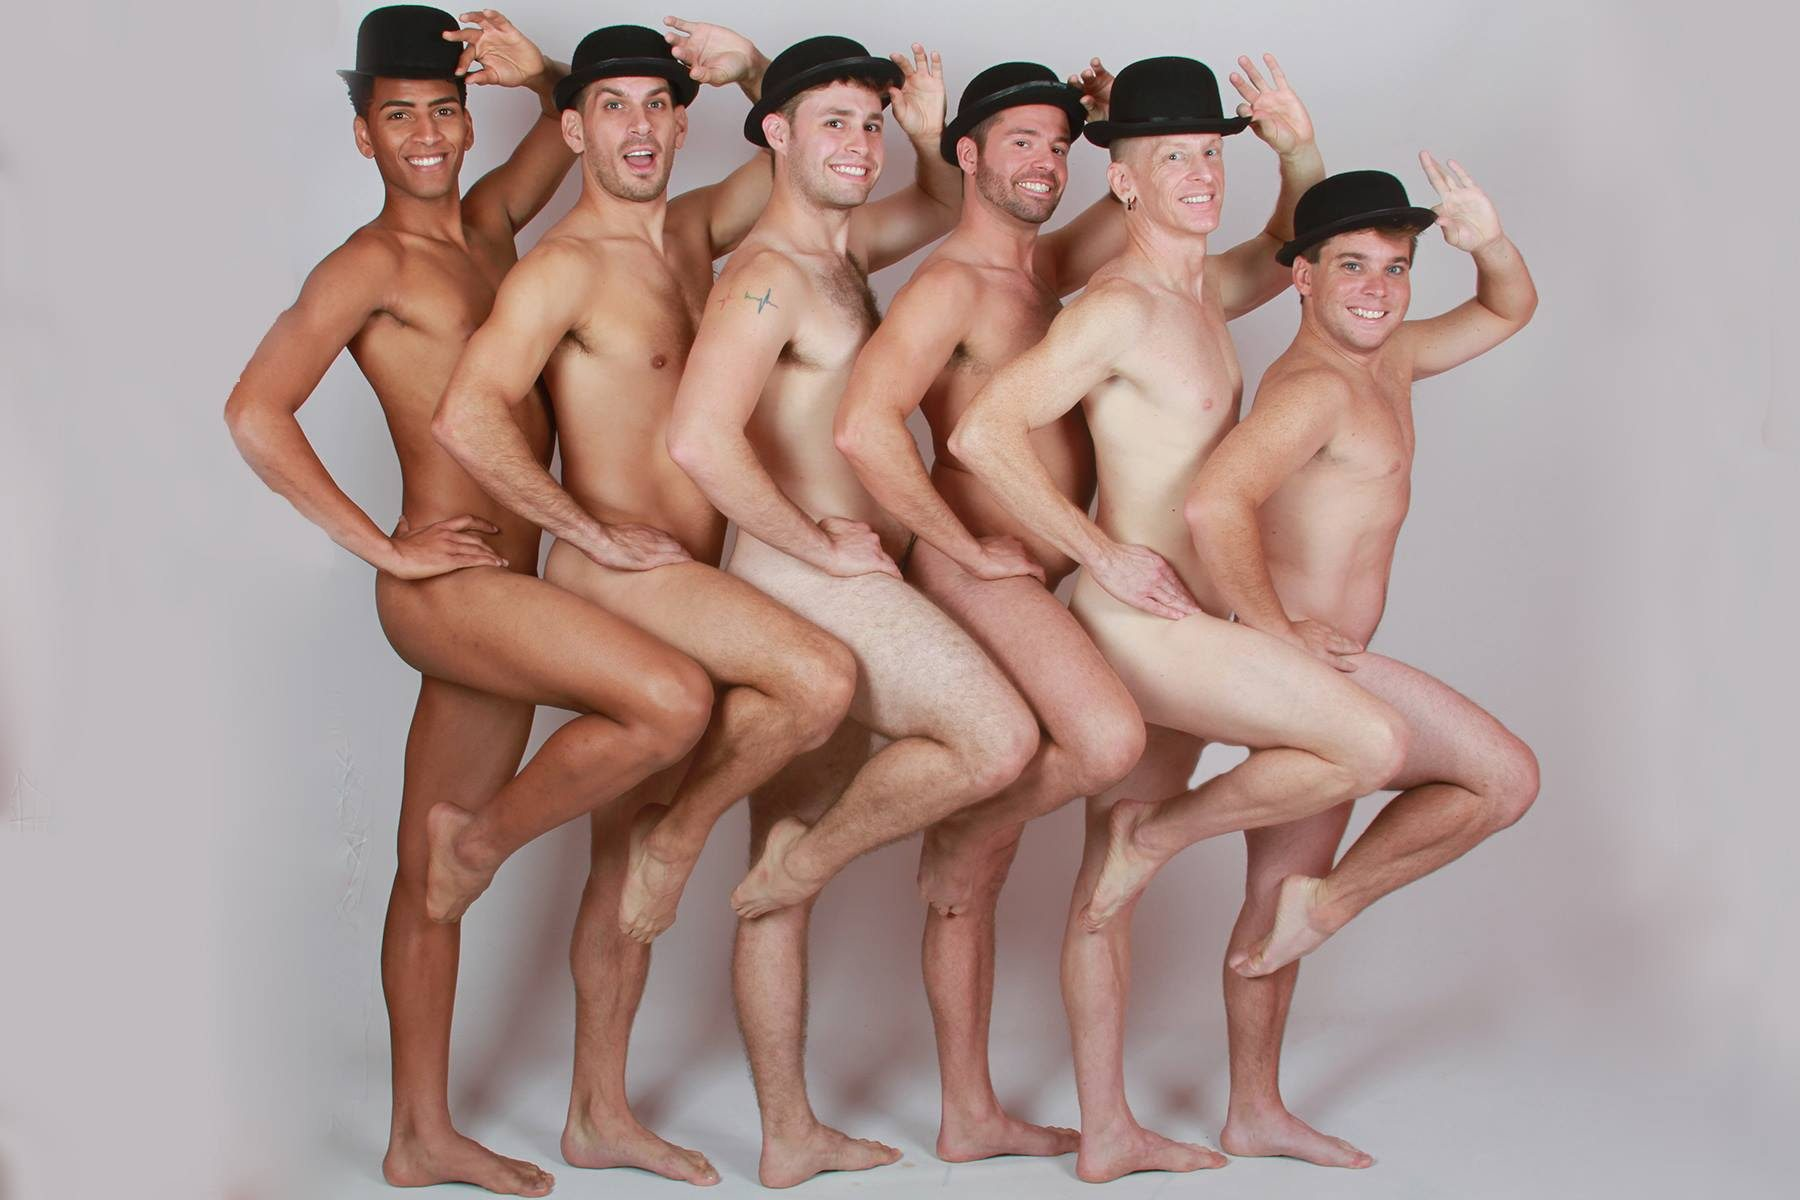 Naked Boys Singing 2016